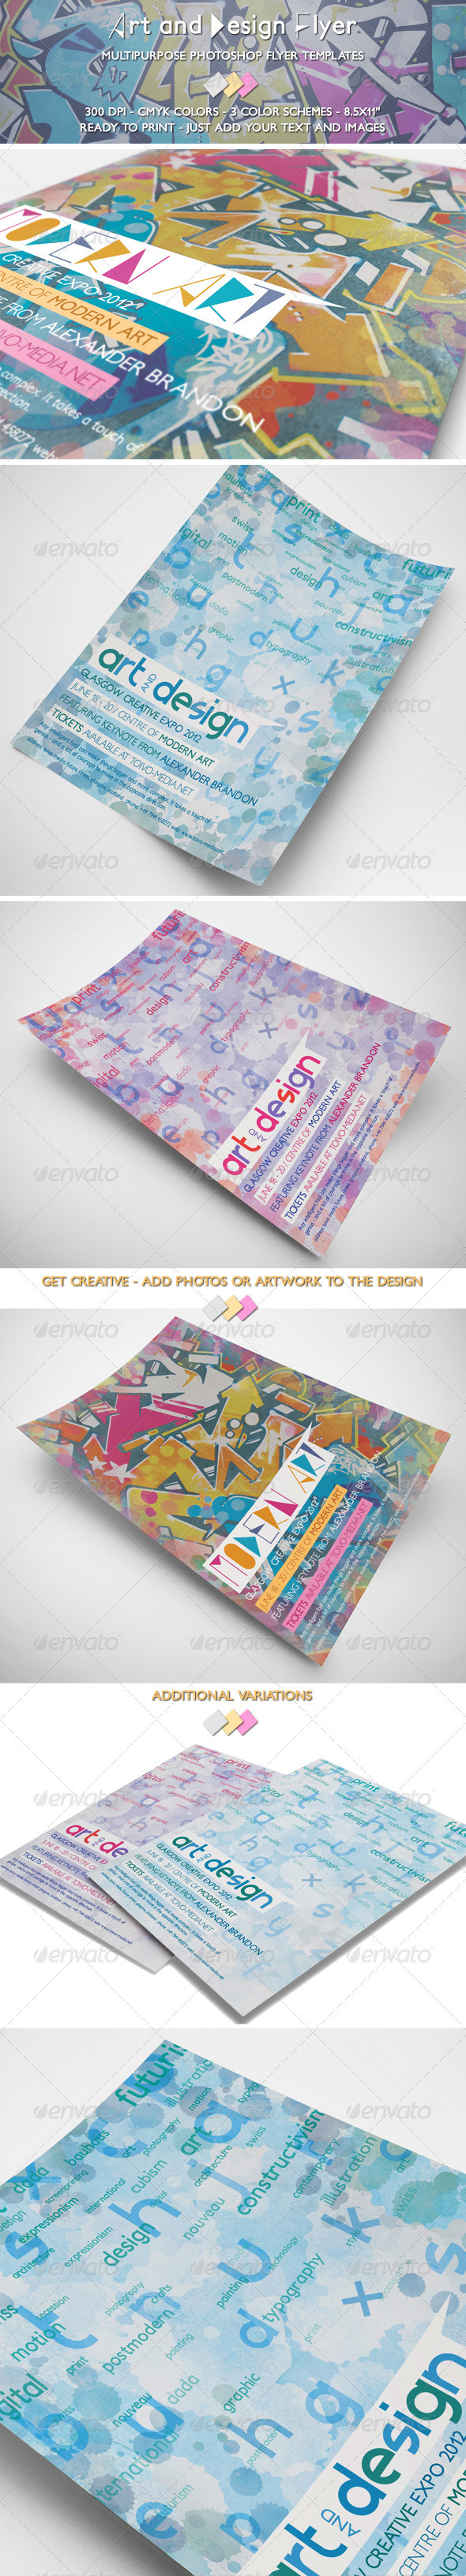 Art and Design Flyer - Miscellaneous Events